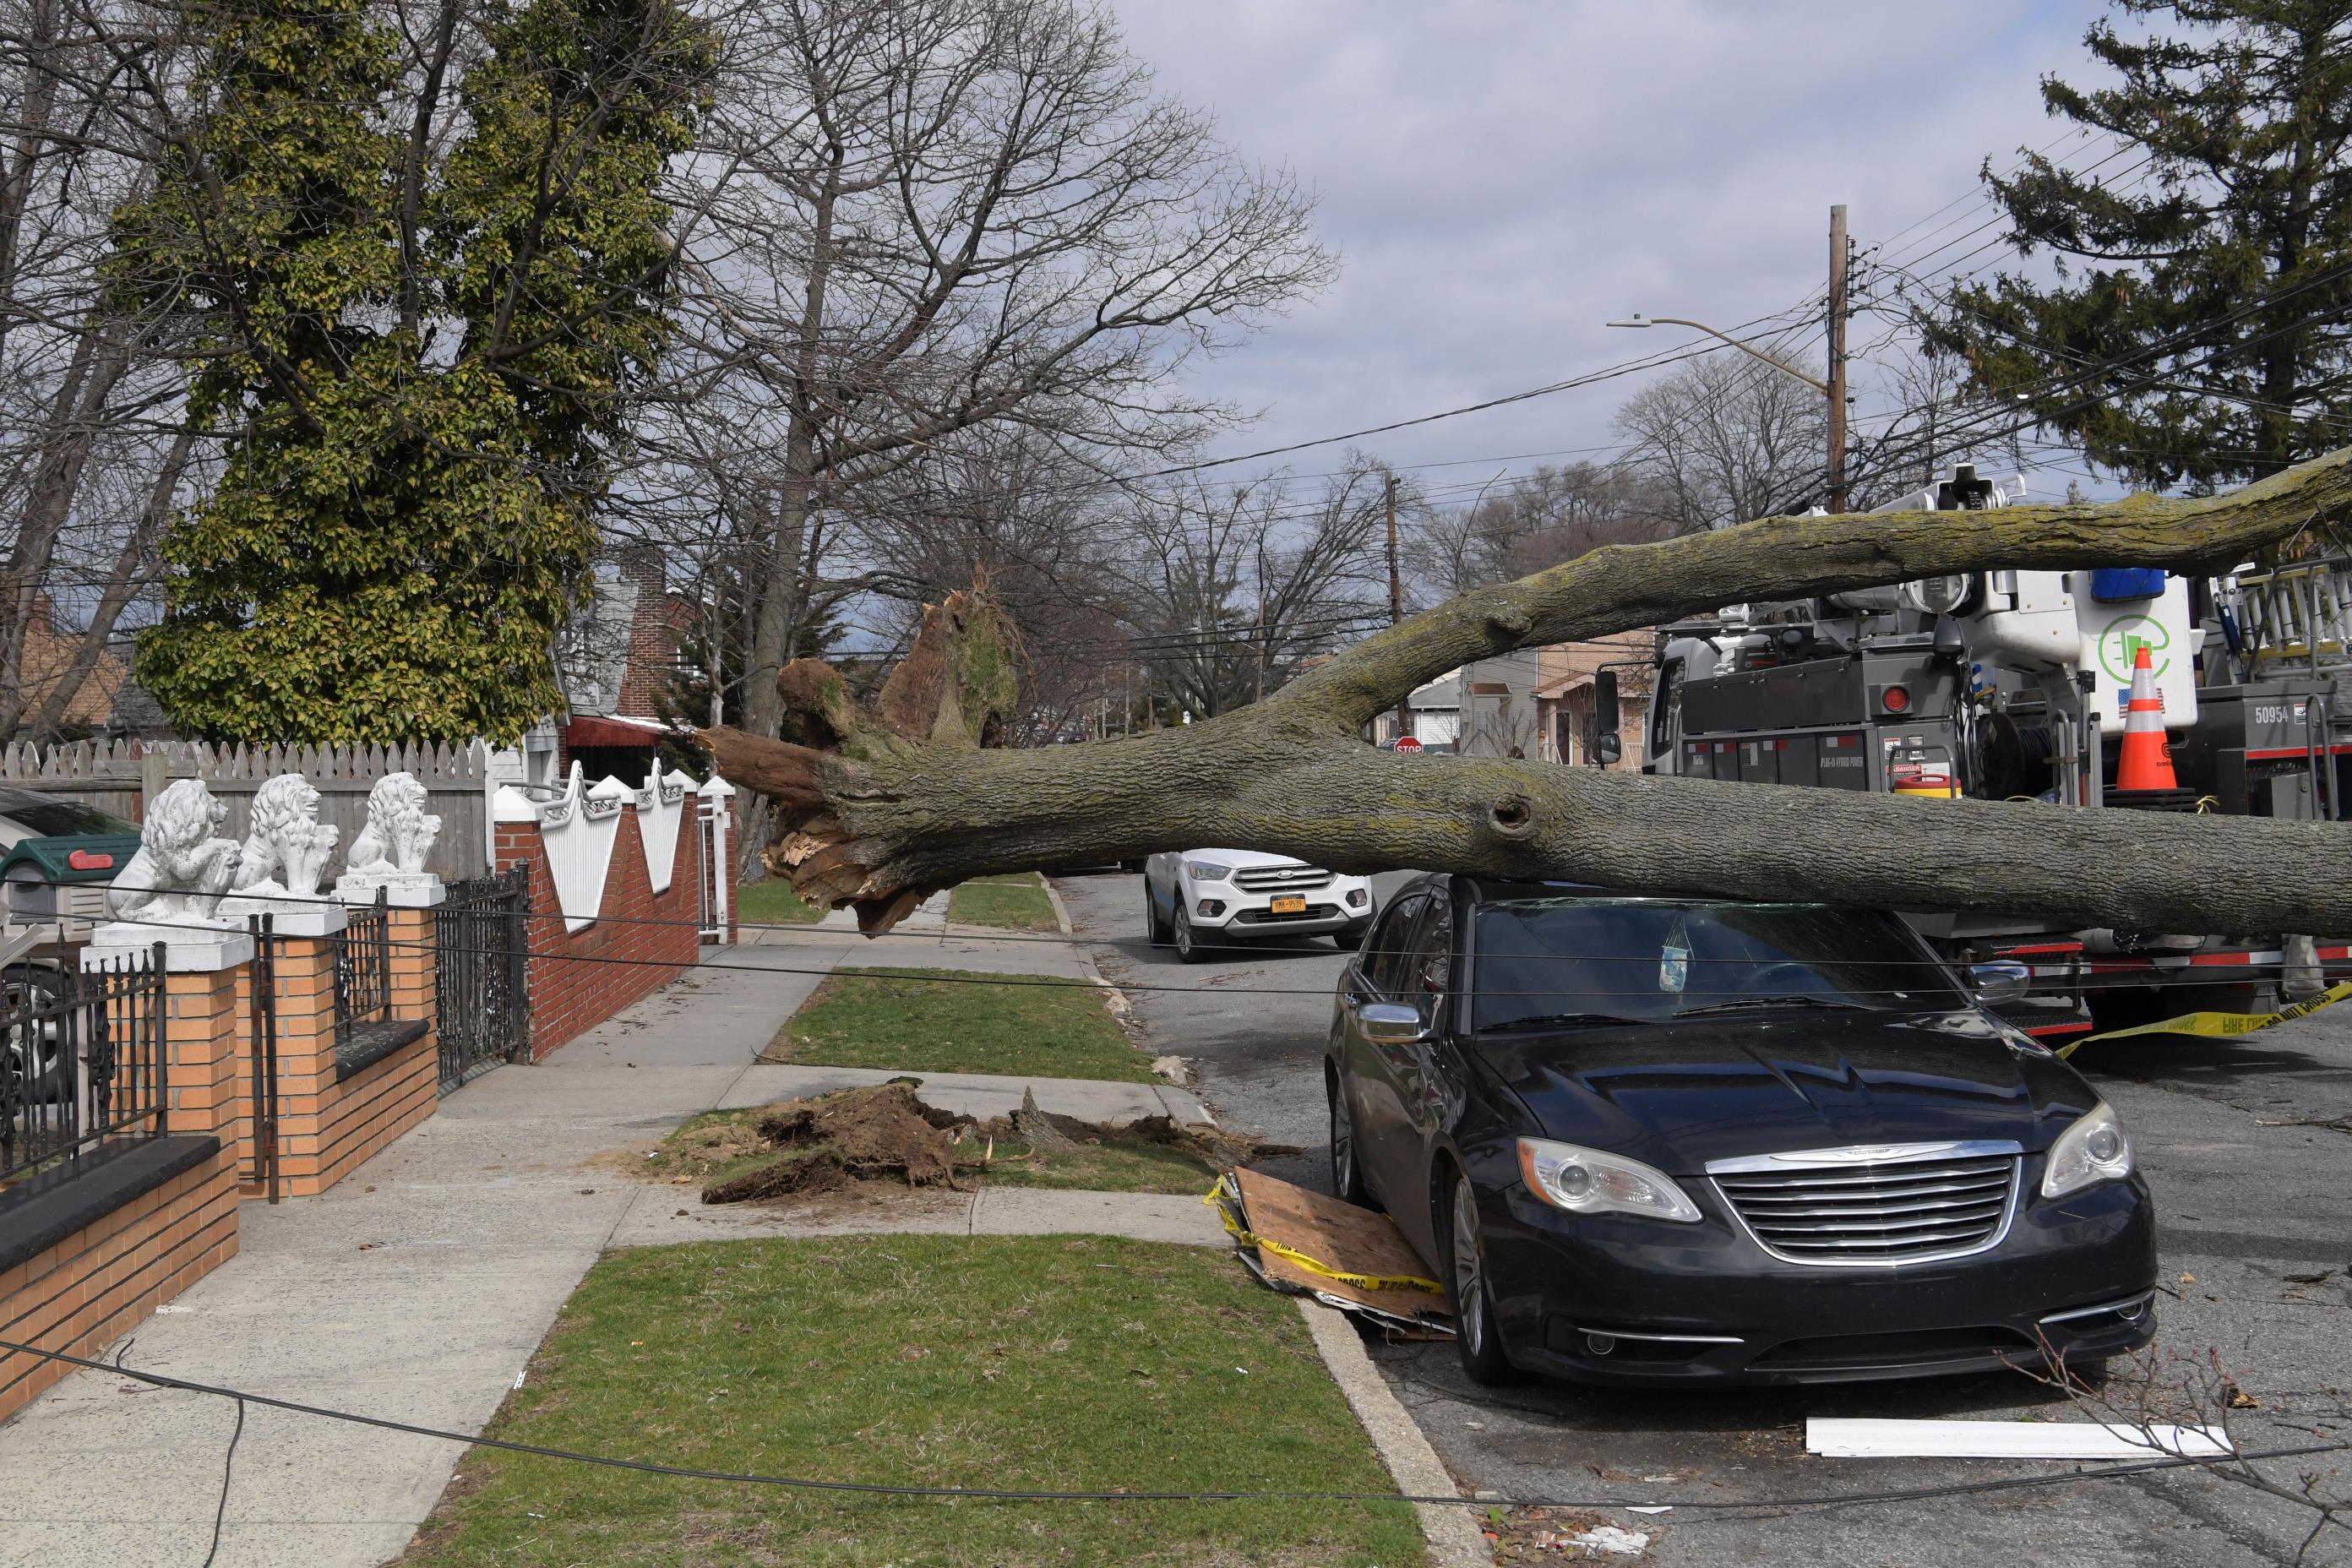 A tree has fallen onto a car, on a residential street